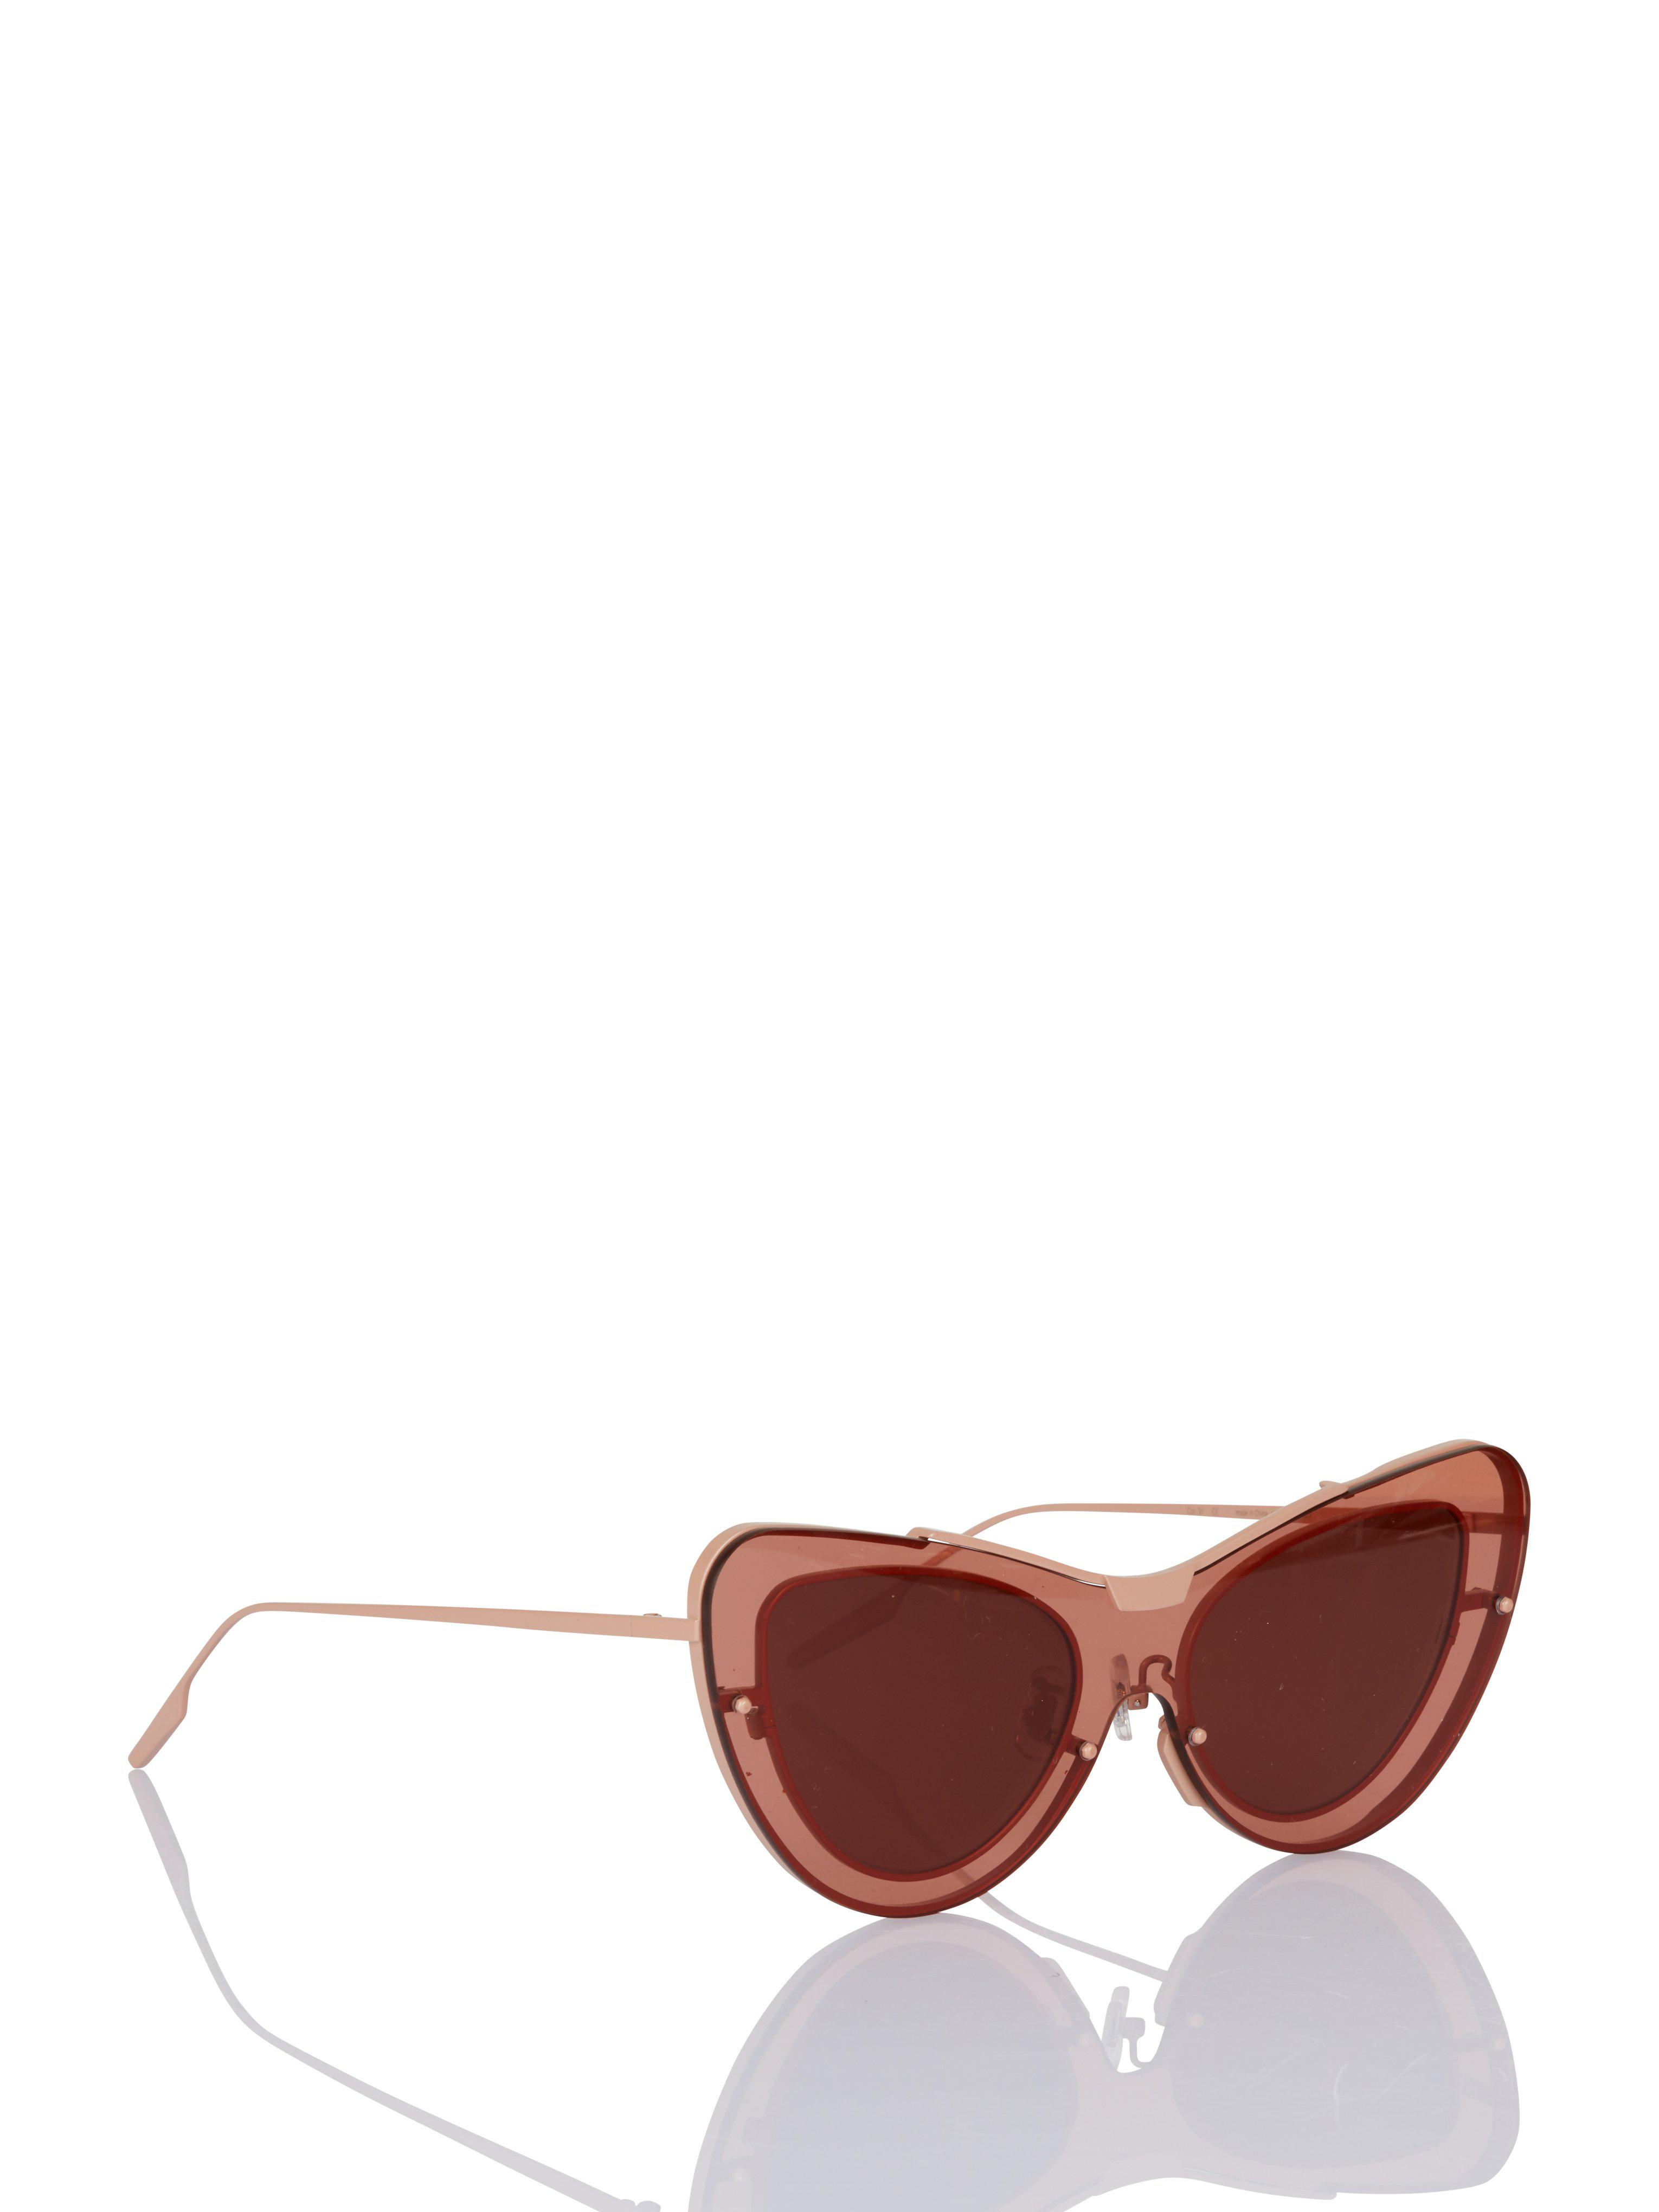 95a08dd603d8 Lyst - Gentle Monster Leela Brown Sunglasses in Brown